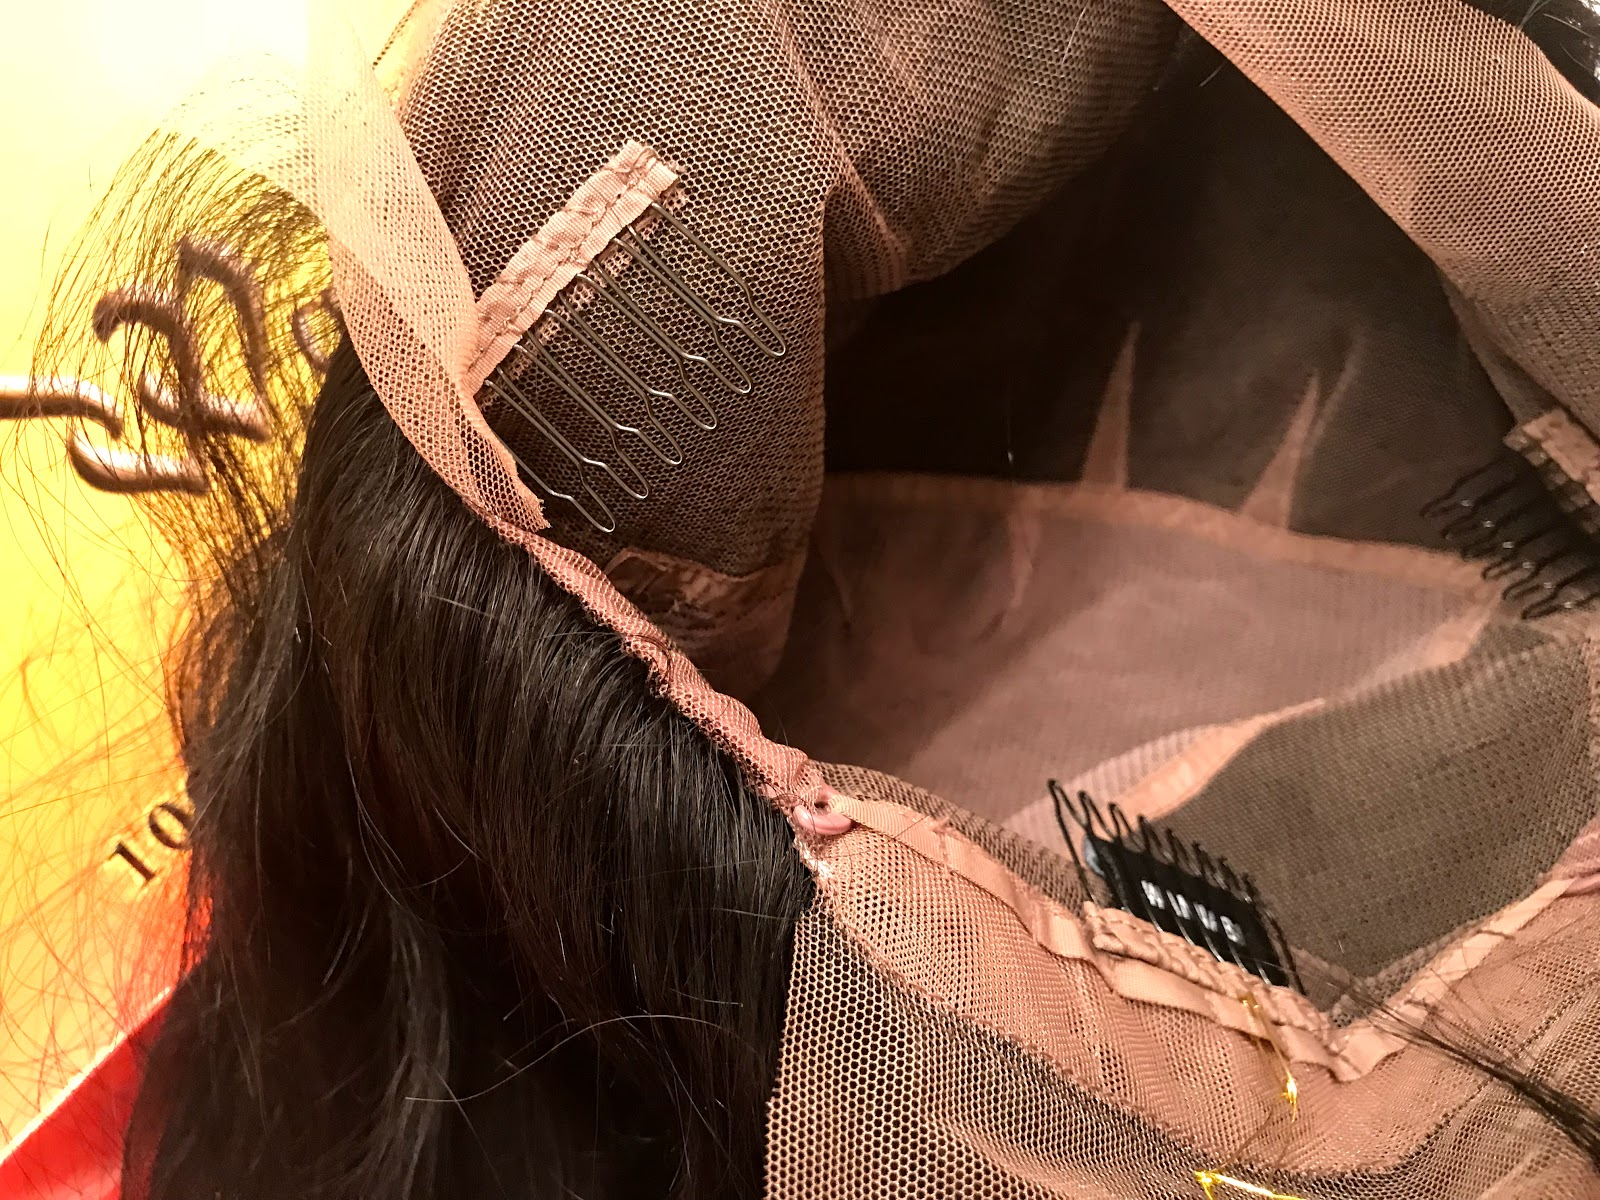 Image:The inside of the wig has four combs, one in the front and back, with one on each side of the ears. The best part was the cap is breathable and soft to the touch.